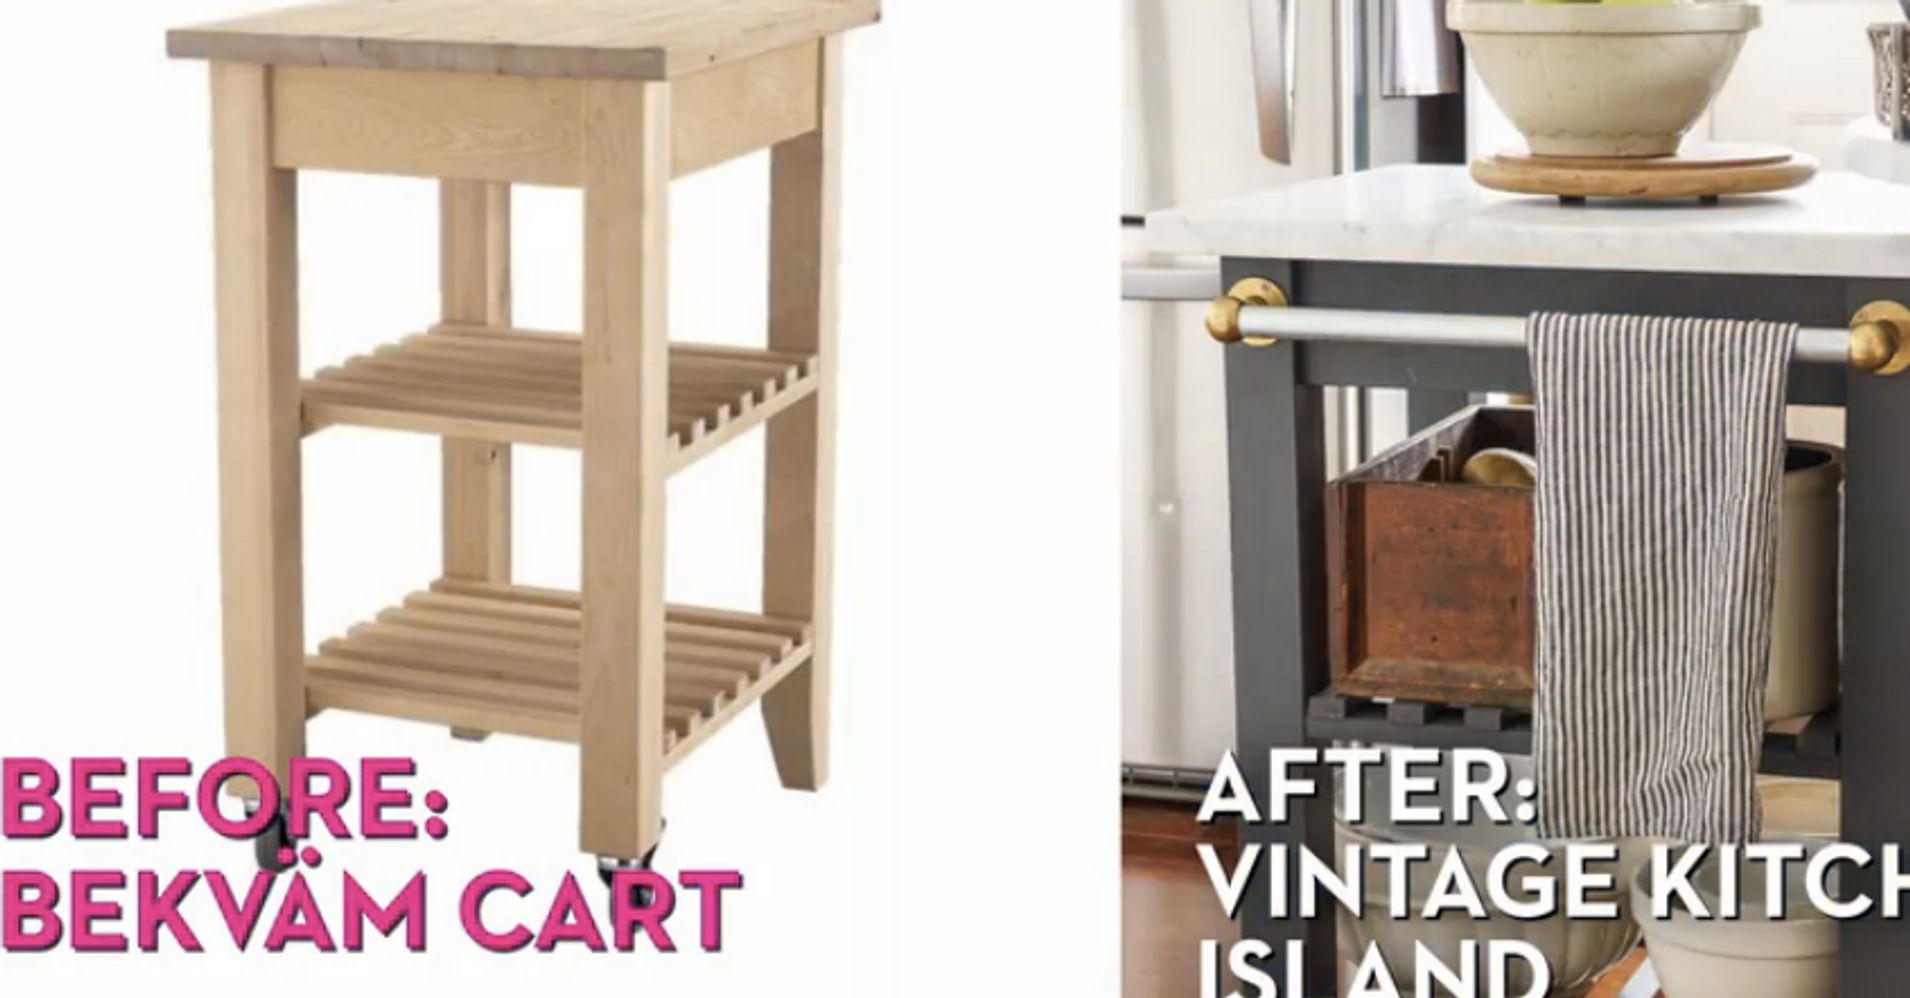 the 10 best ikea hacks of all time huffpost. Black Bedroom Furniture Sets. Home Design Ideas